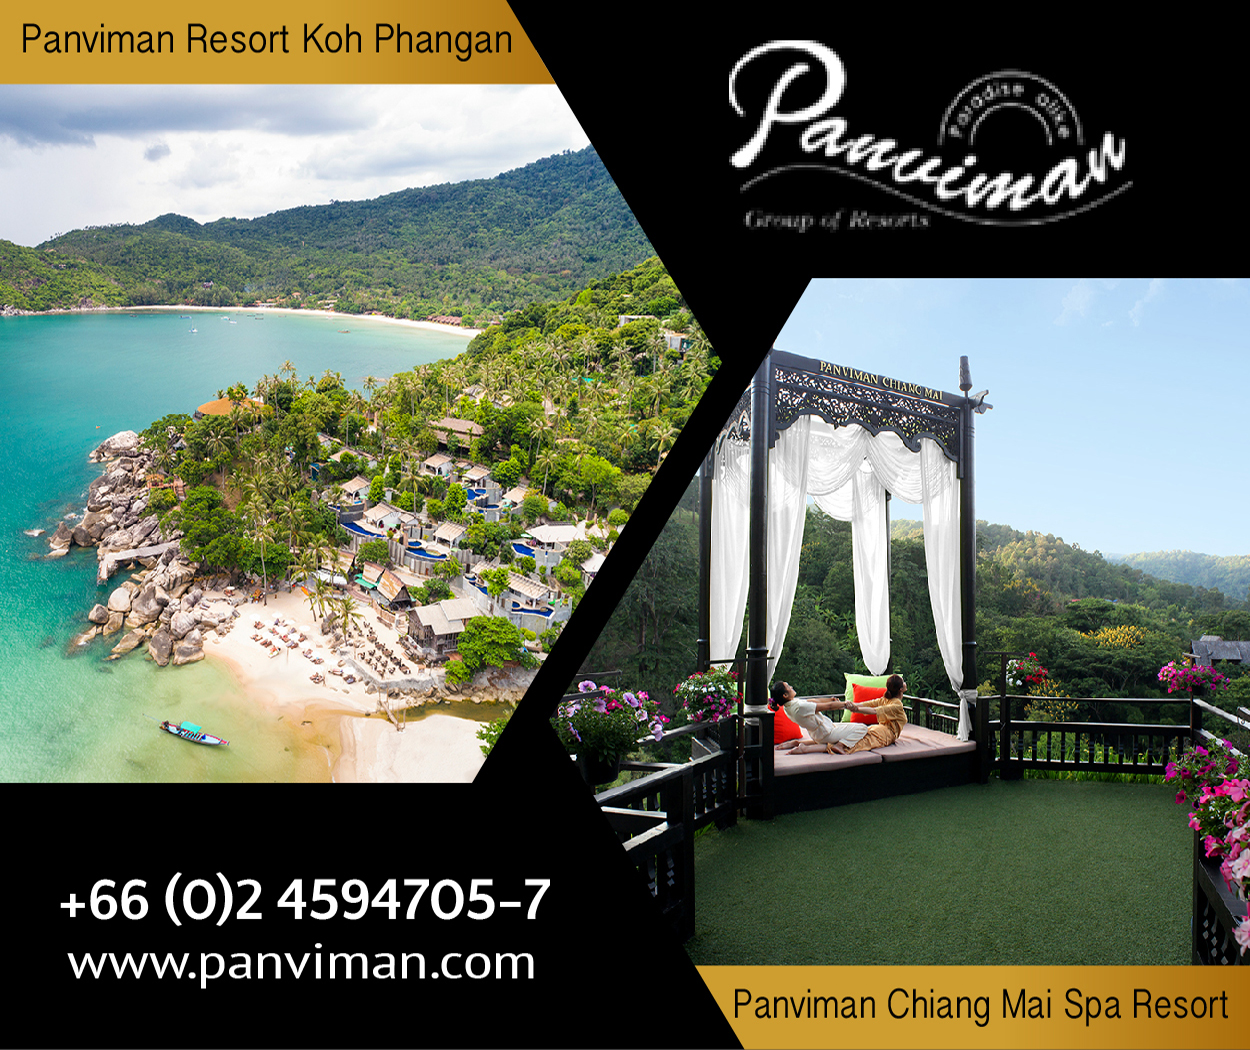 Panviman Group of Resorts